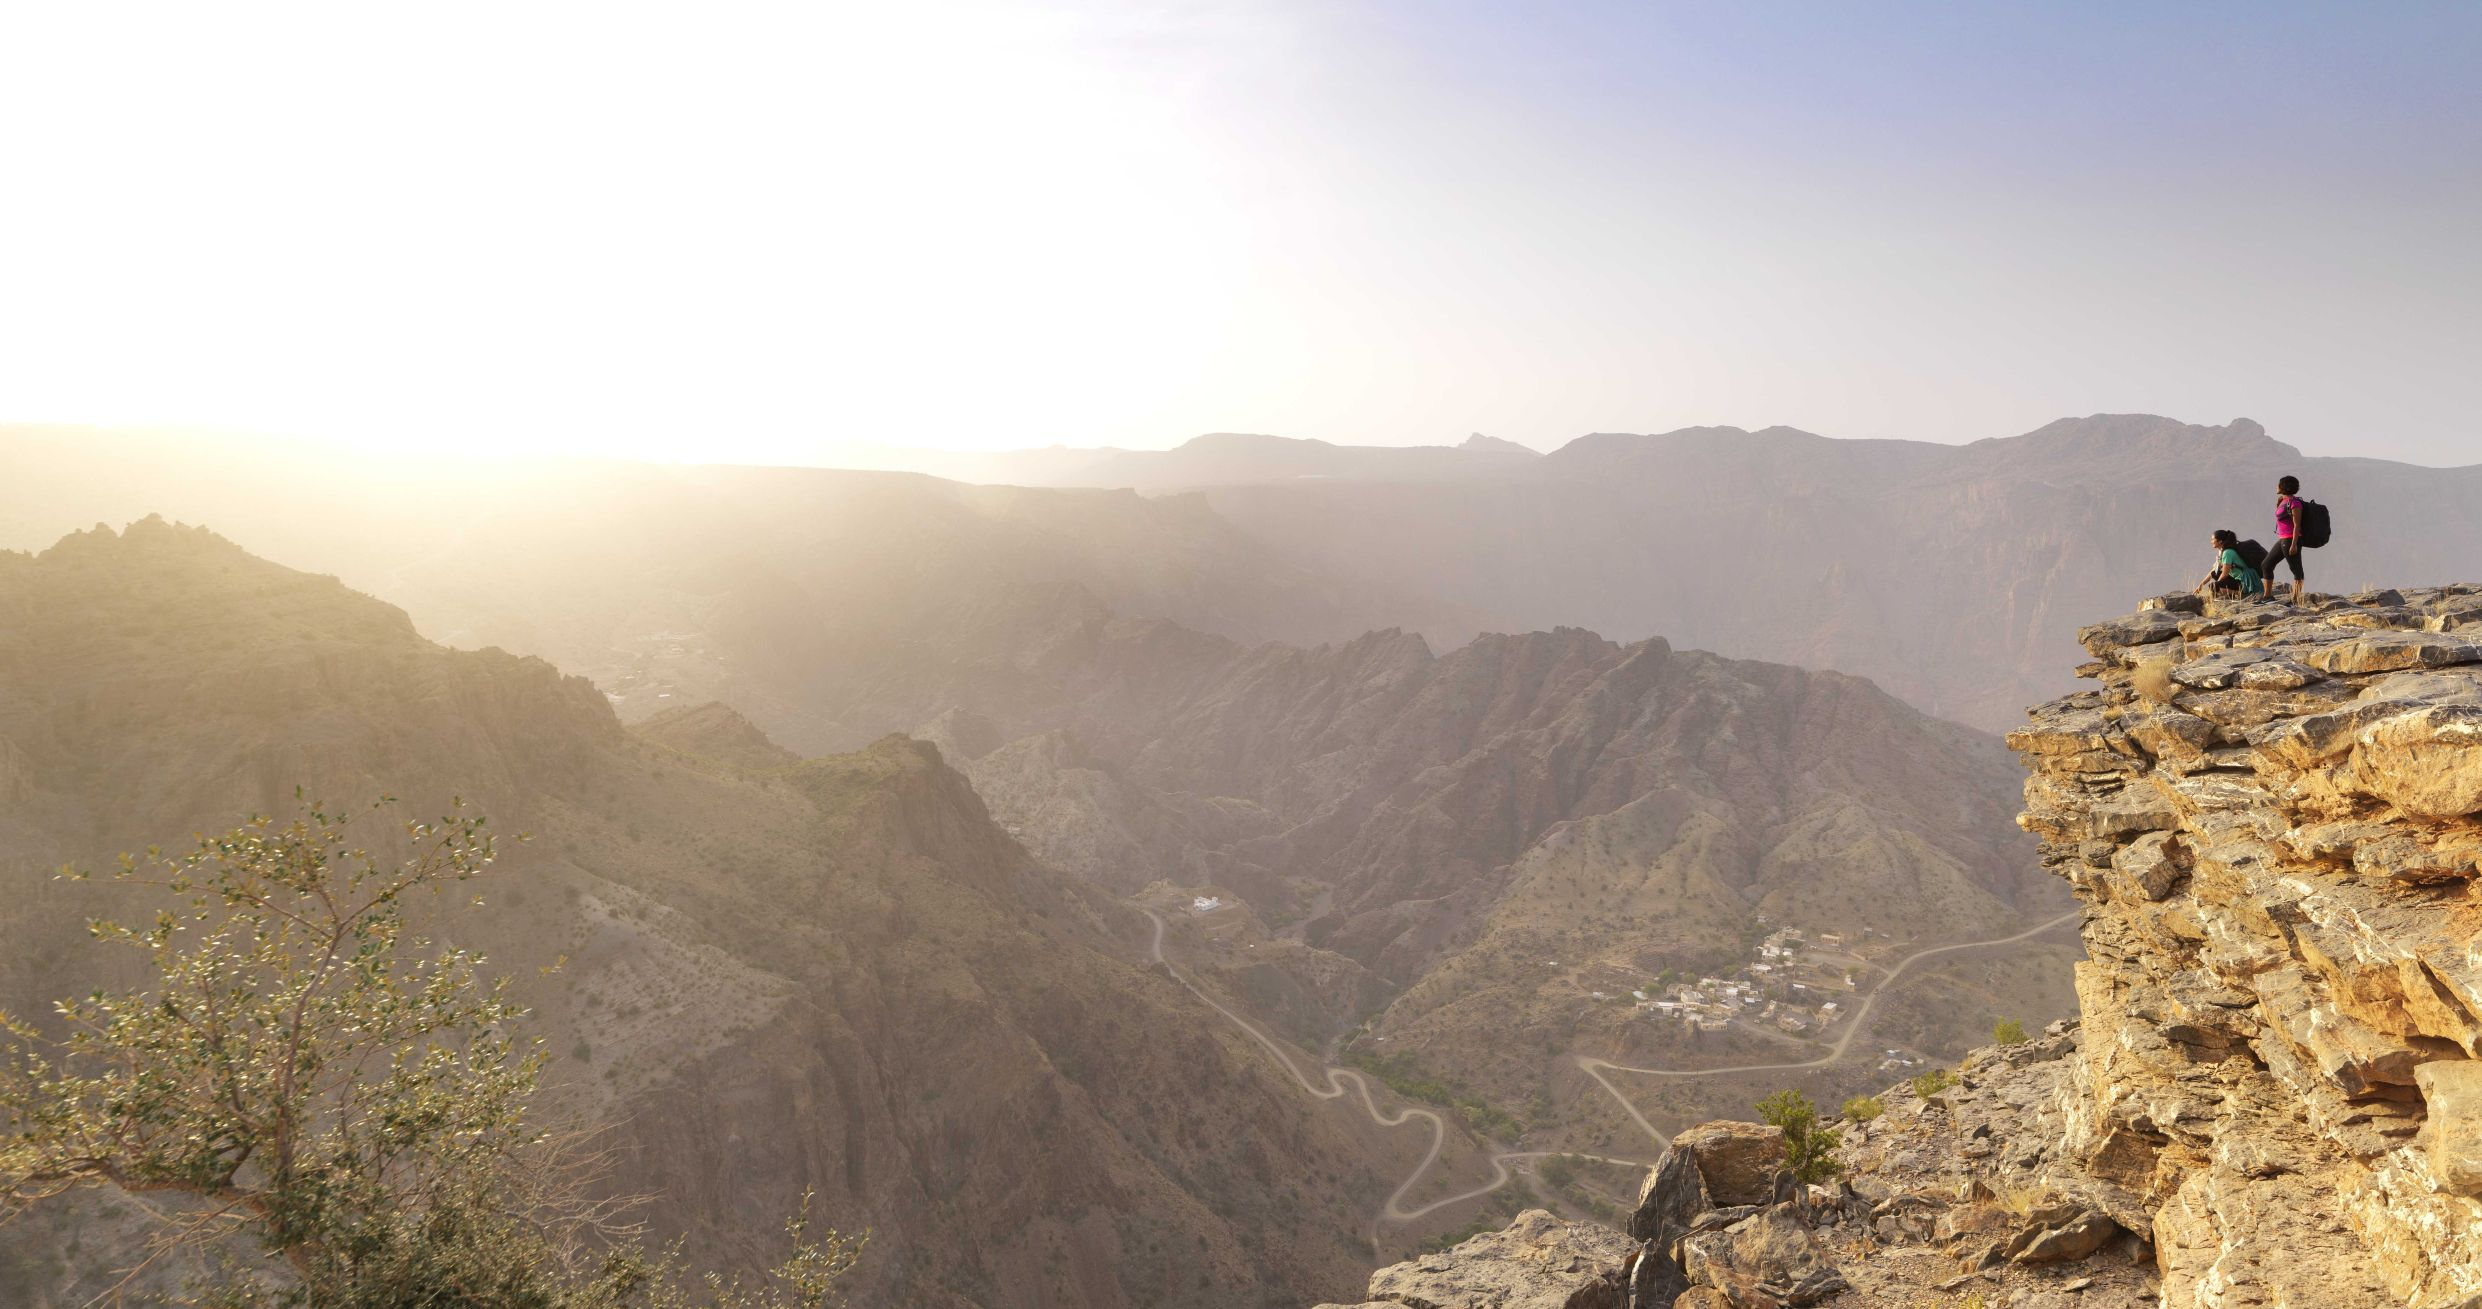 A visit to the two Anantara resorts of Oman and their striking surroundings is a chance to step back in time to the Arabia of old.